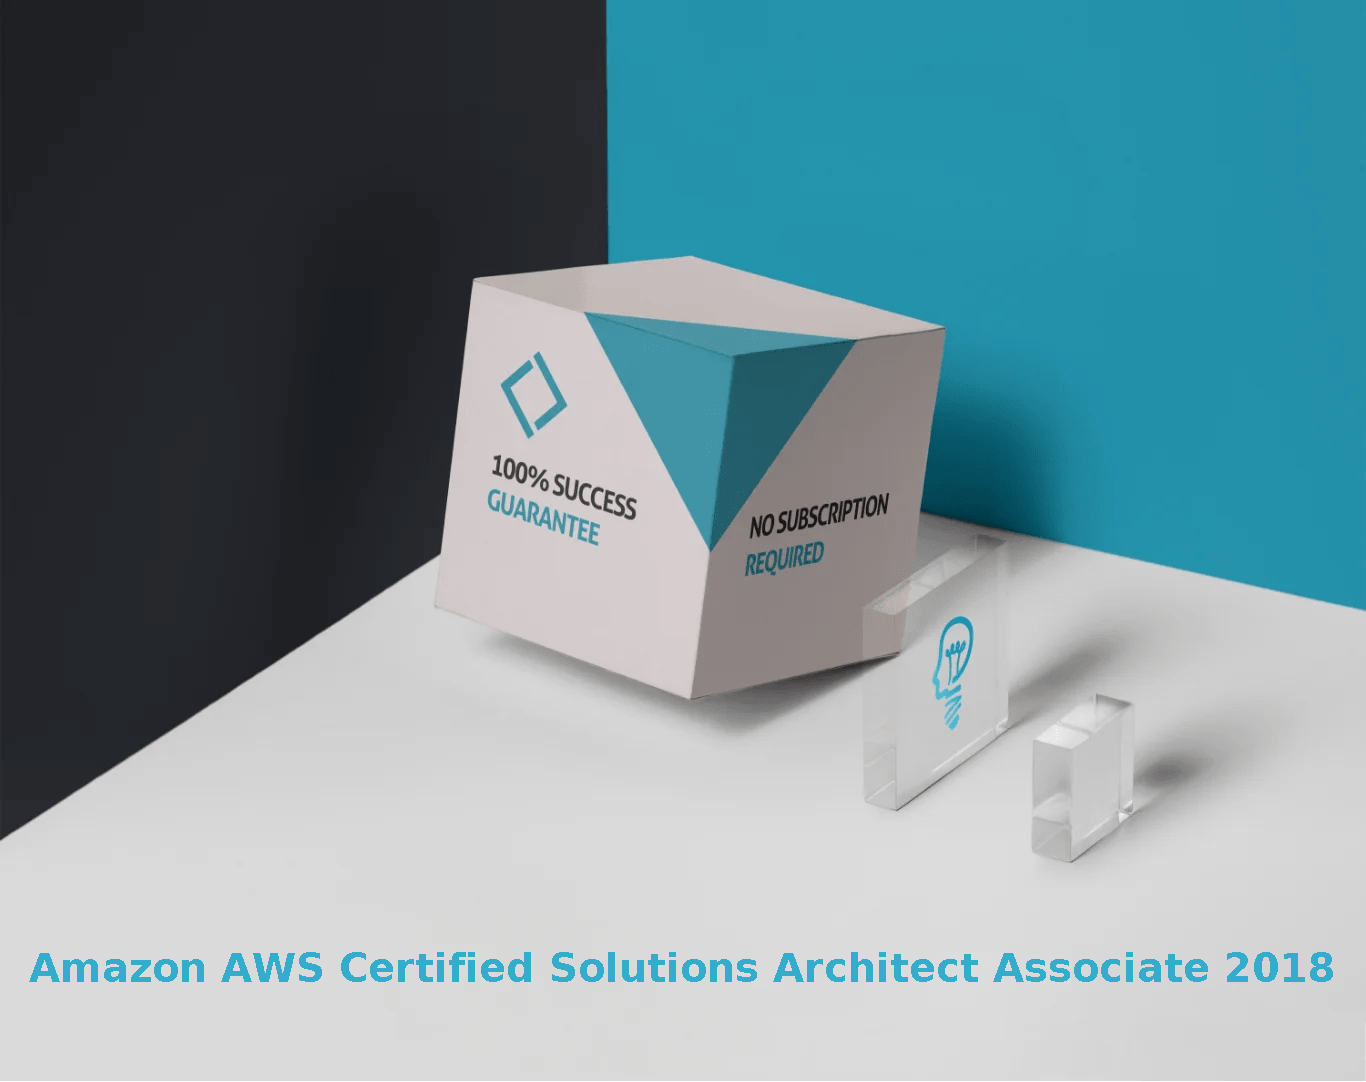 Amazon AWS Certified Solutions Architect Associate 2018 Exams